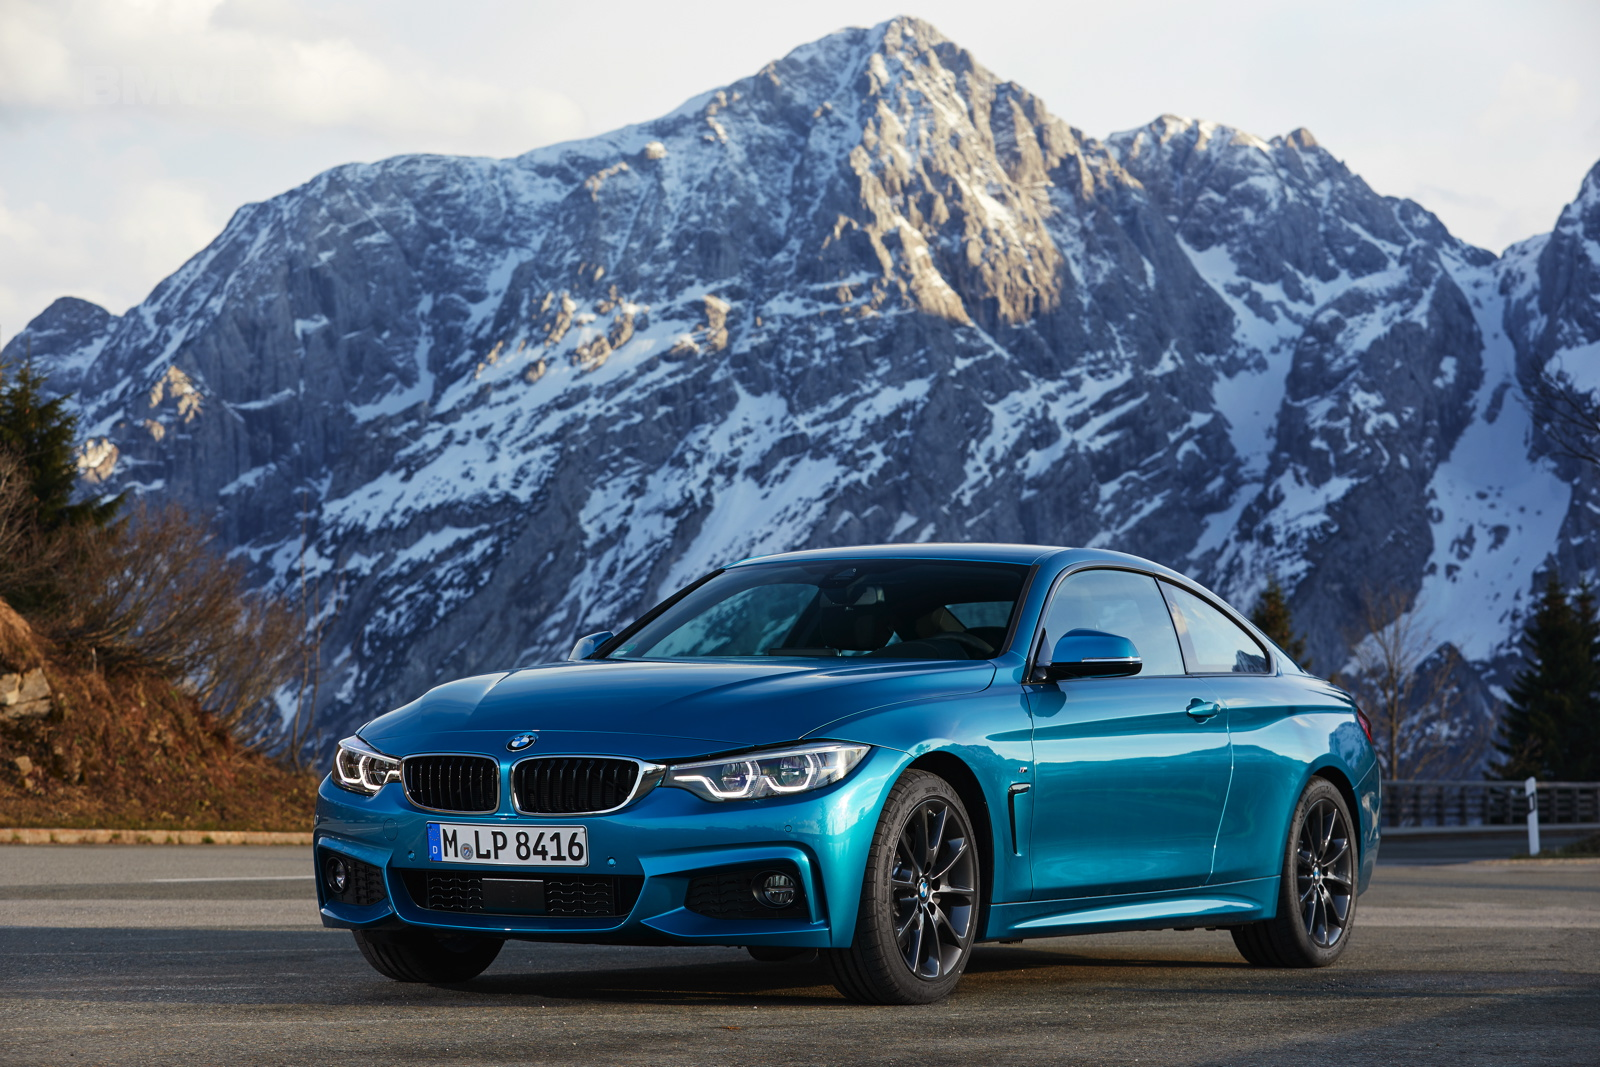 2018 BMW 4 Series Coupe test drive 27 1